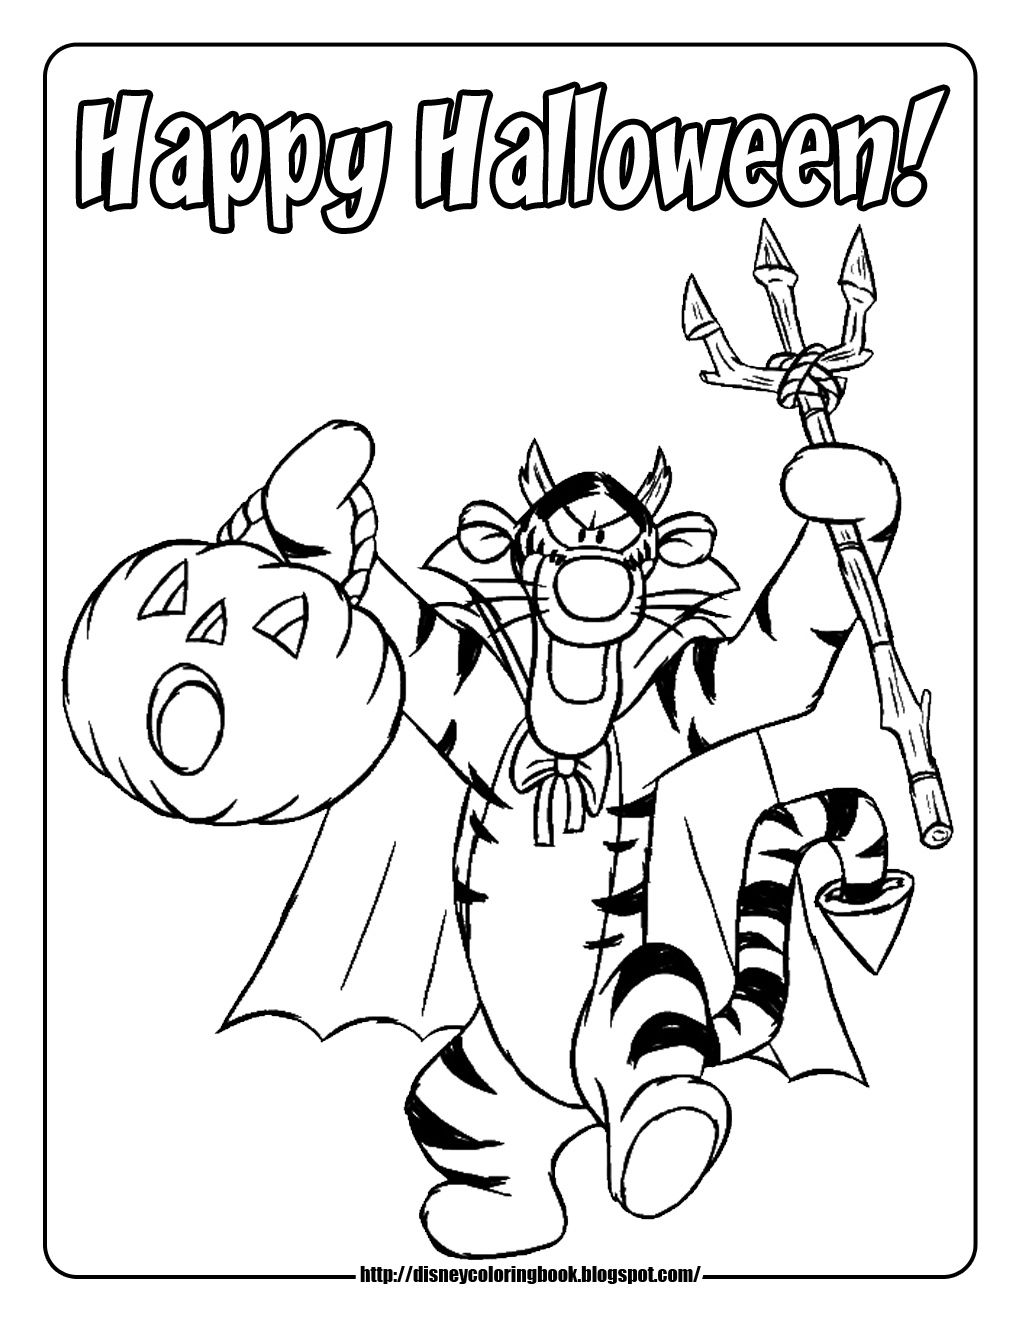 Disney coloring books for halloween - Disney Coloring Pages And Sheets For Kids